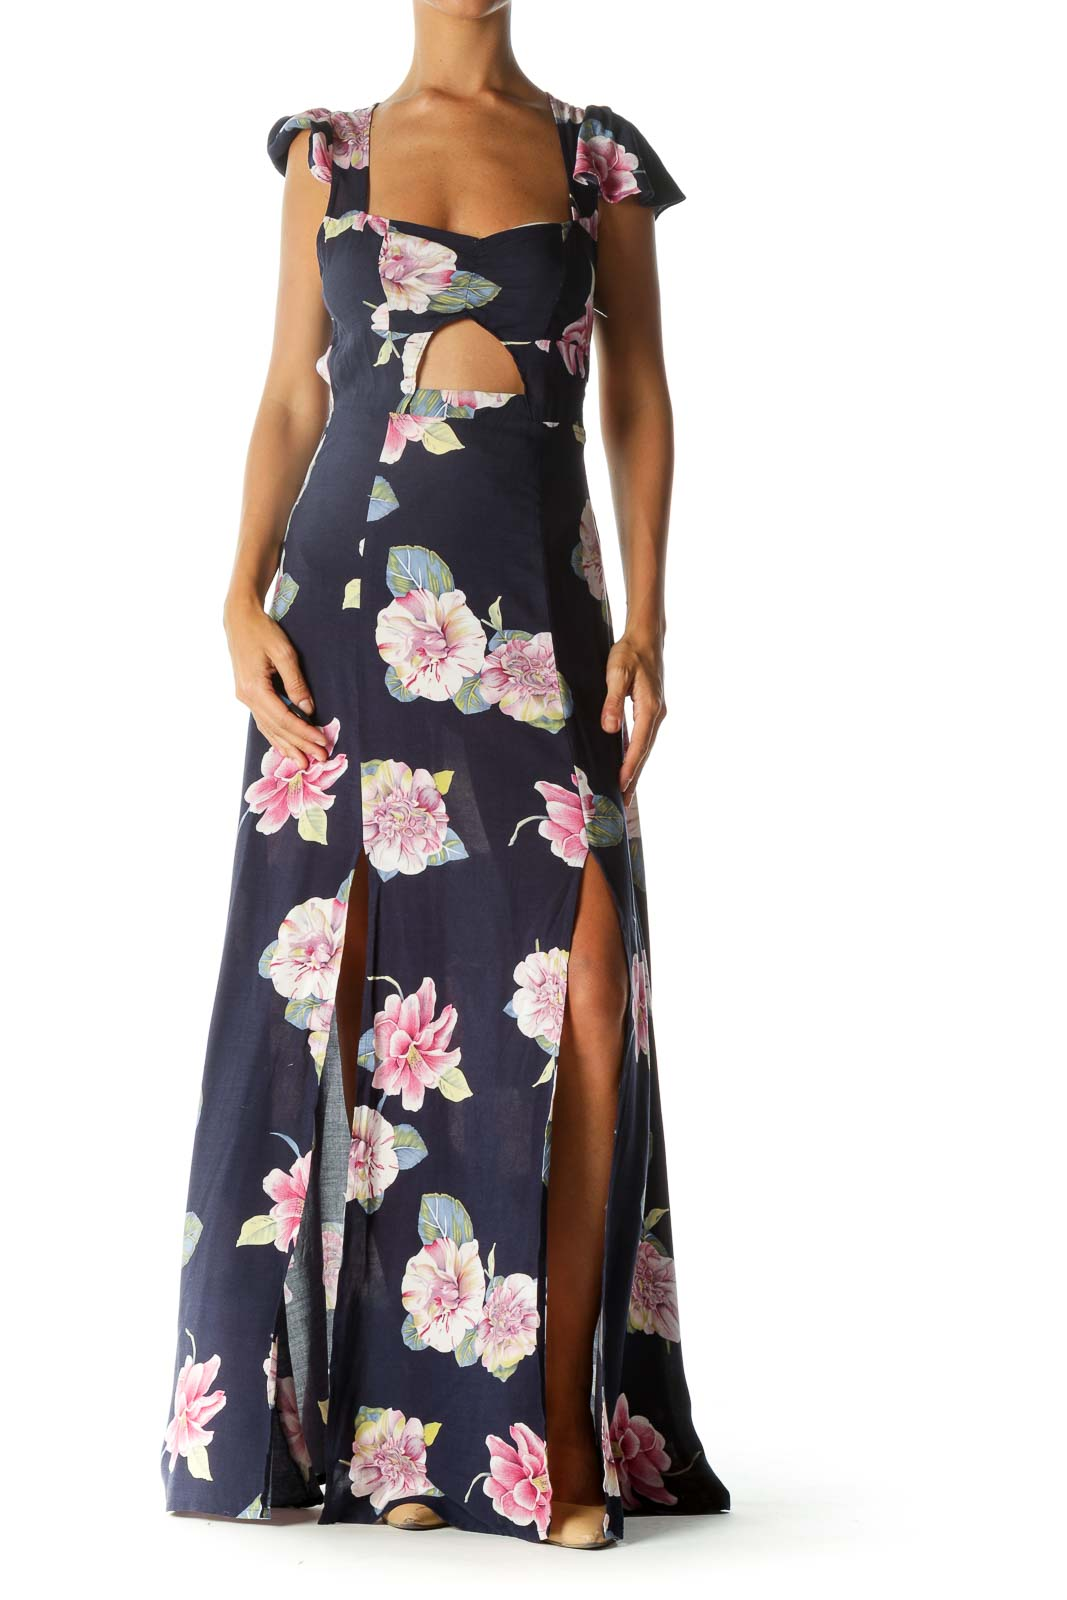 Navy Blue Pink Yellow White Floral Print Cut-Out Leg-Opening Day Dress Front